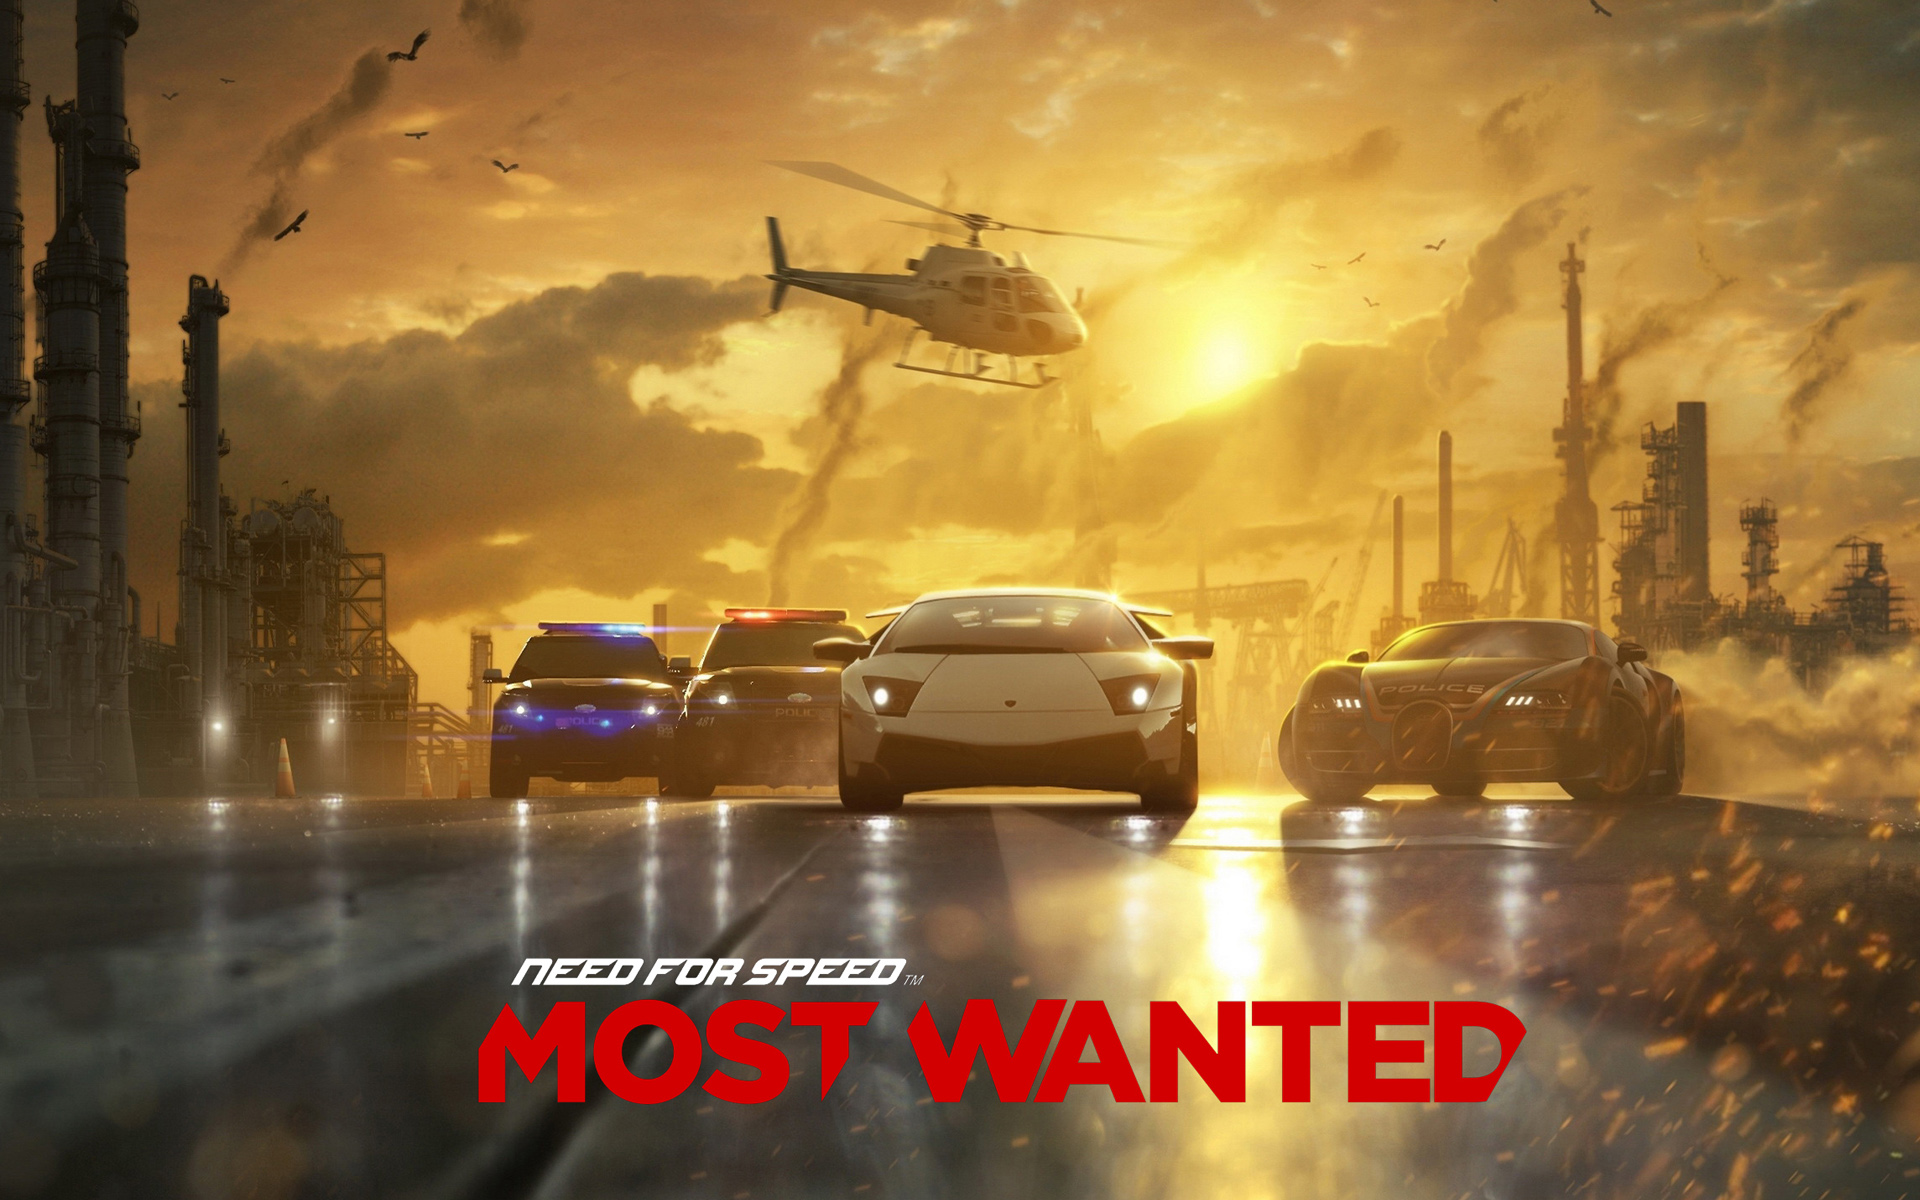 New need for speed release date in Australia